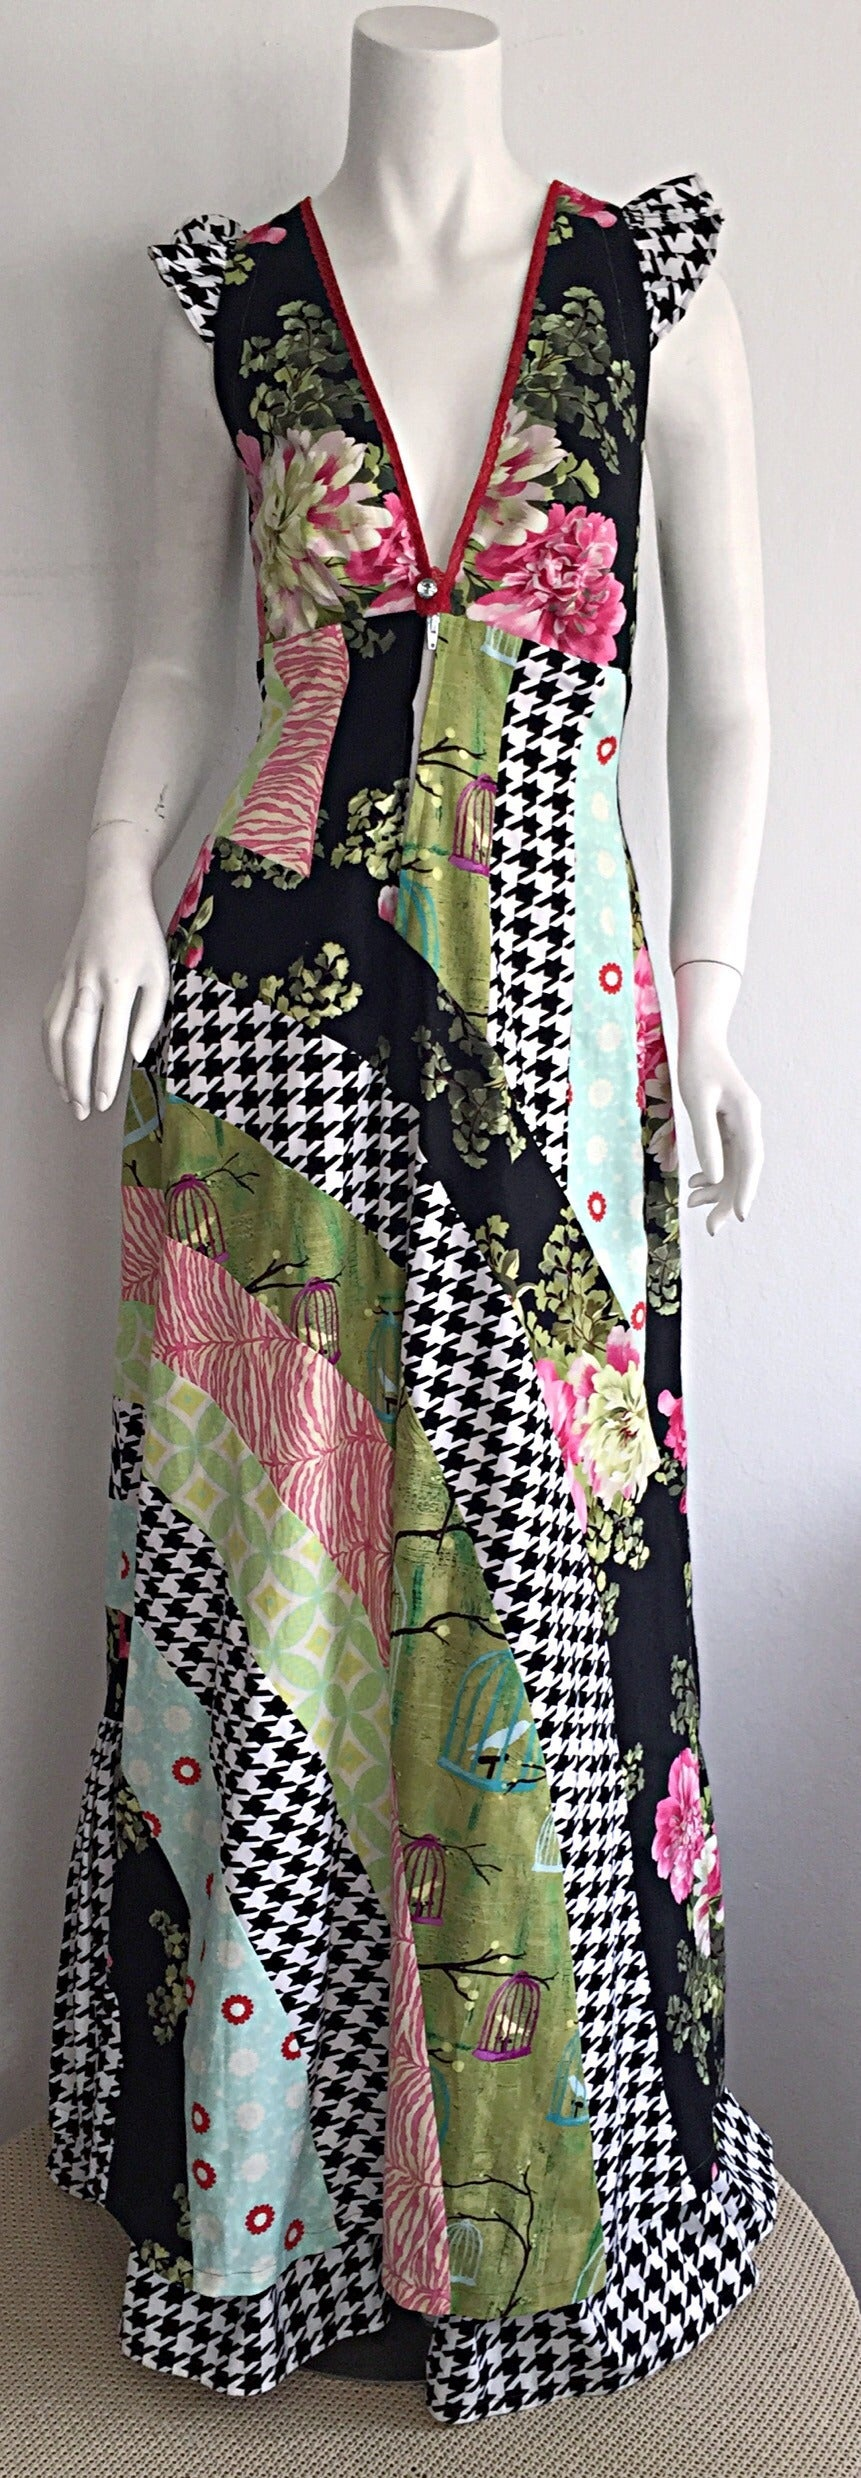 Awesome 1970s patchwork dress! Beautiful ruffles at sleeves, with plunging neckline, and rhinestone at bust. Lace trim at bust. Layers and layers of cotton, with various patchwork prints throughout. Impeccable construction. Perfect with sandals or